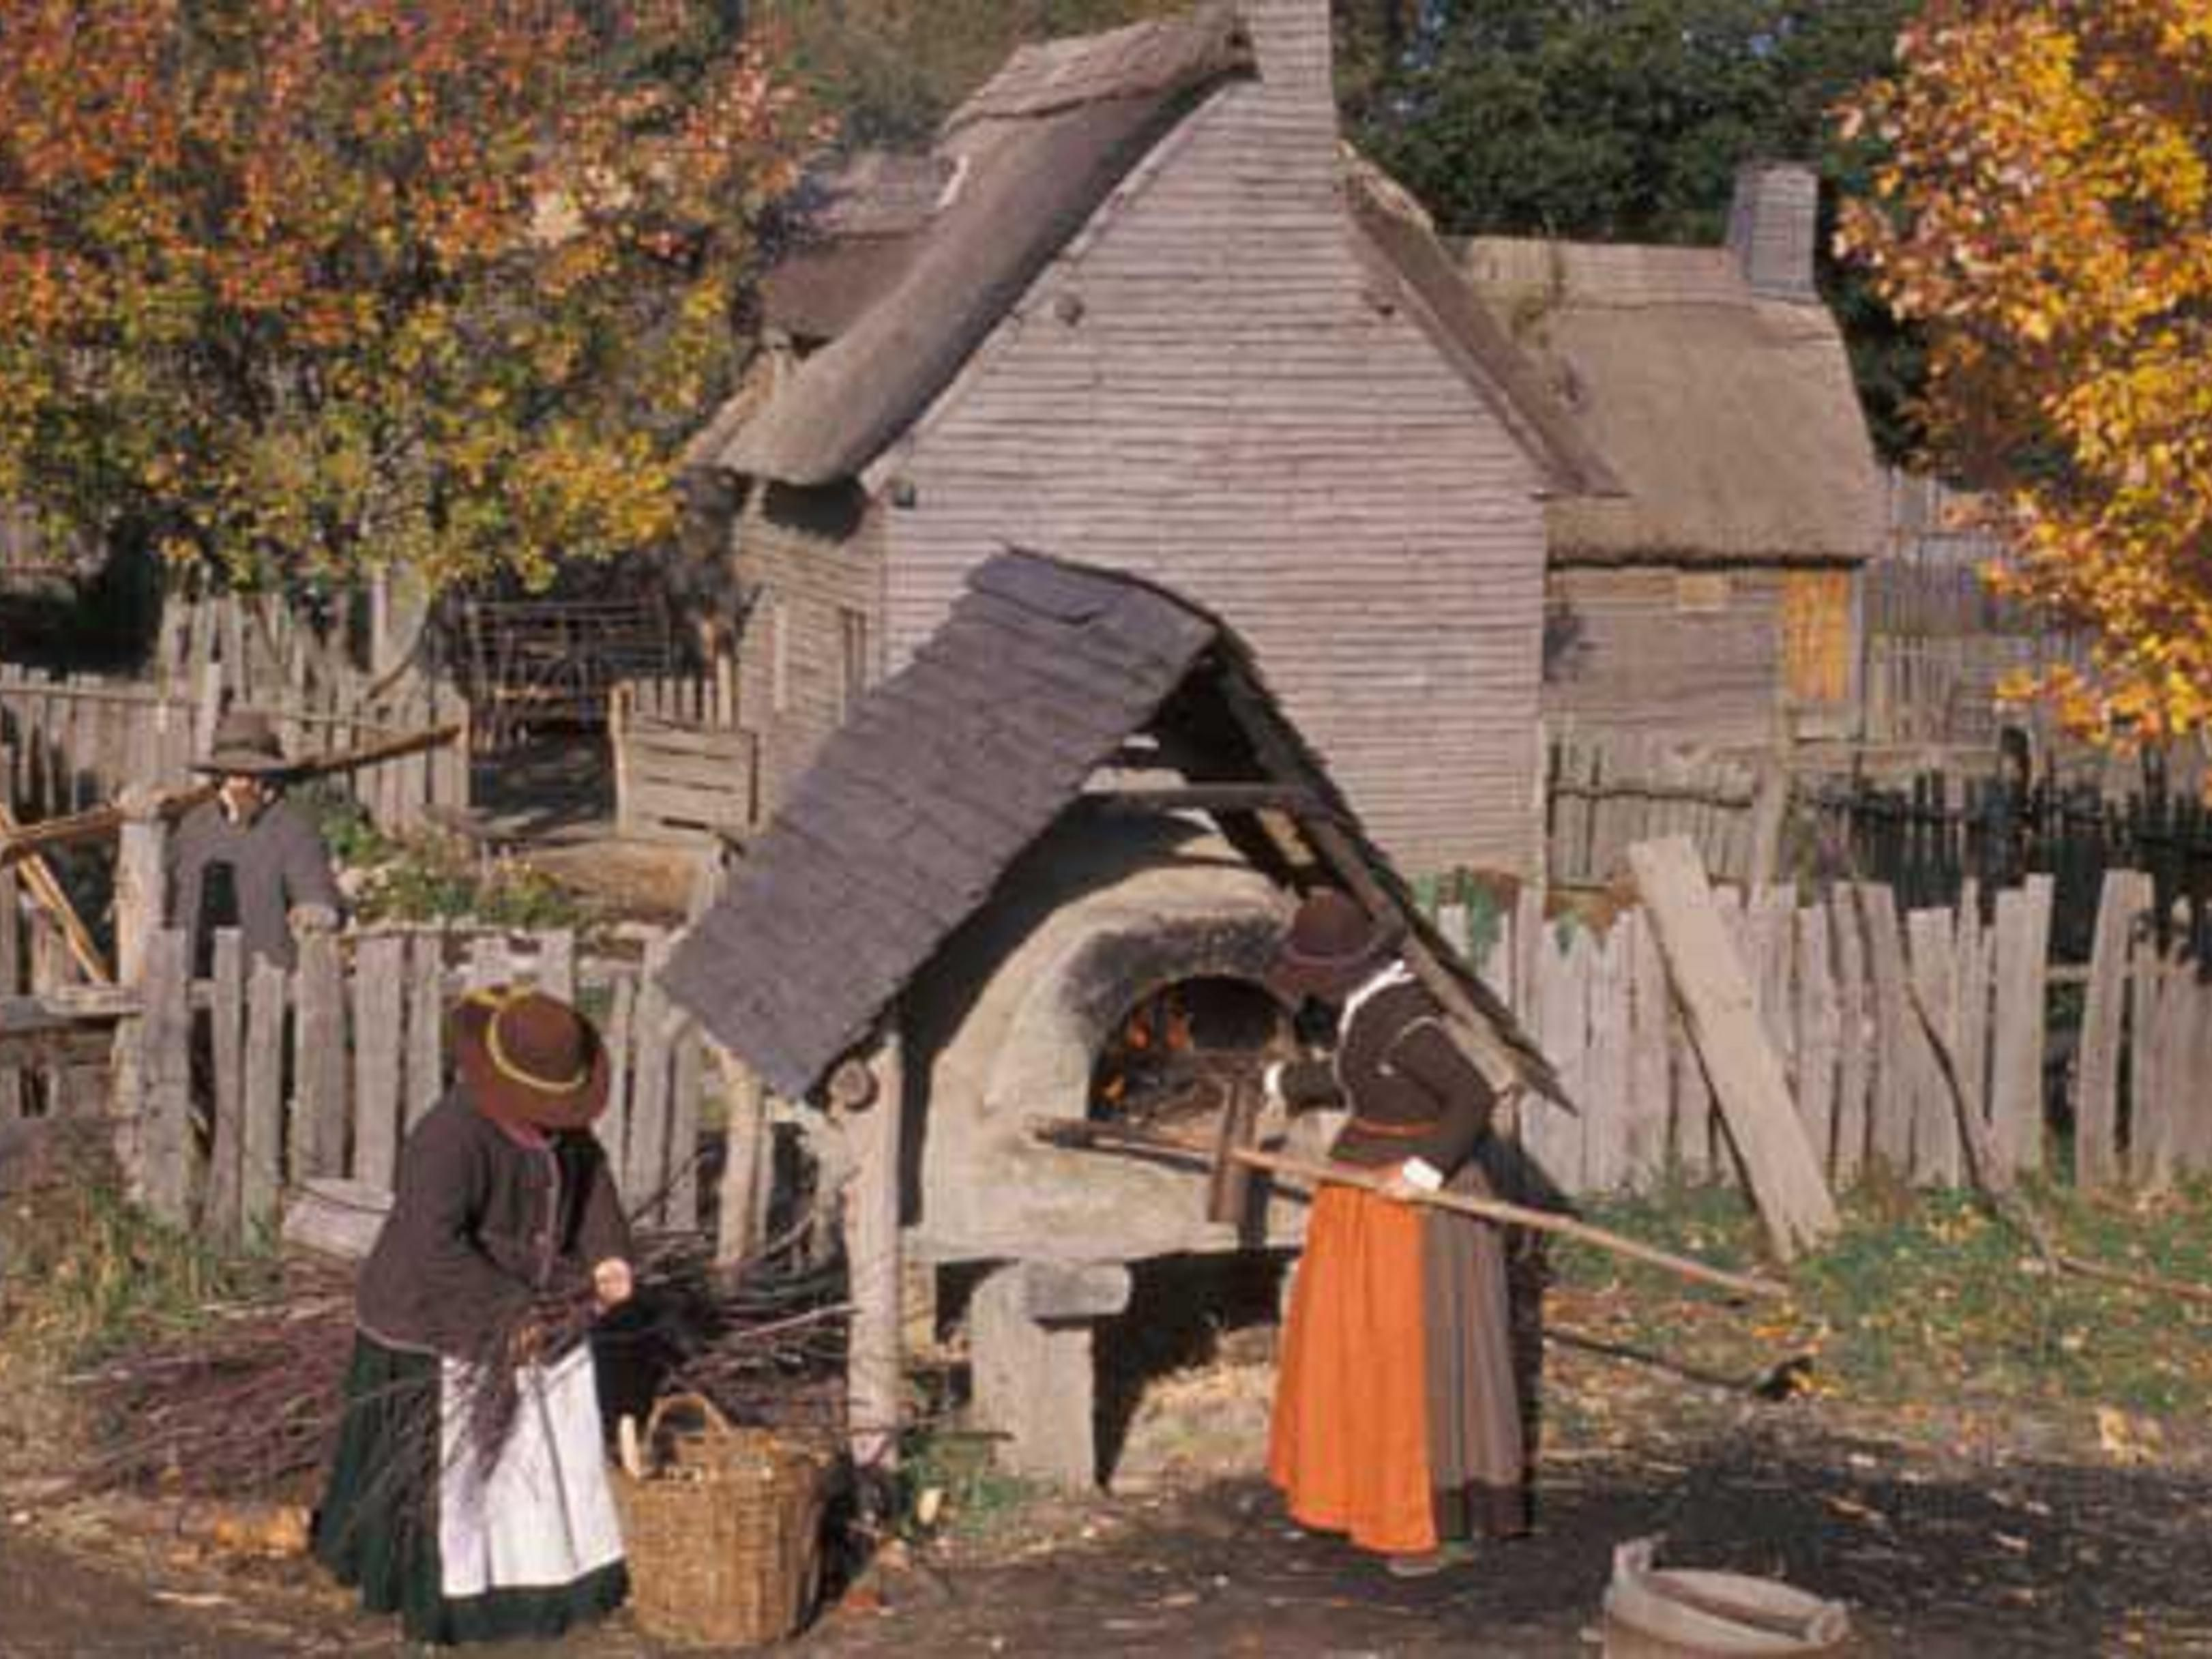 Take a tour of historic Plymouth Plantation